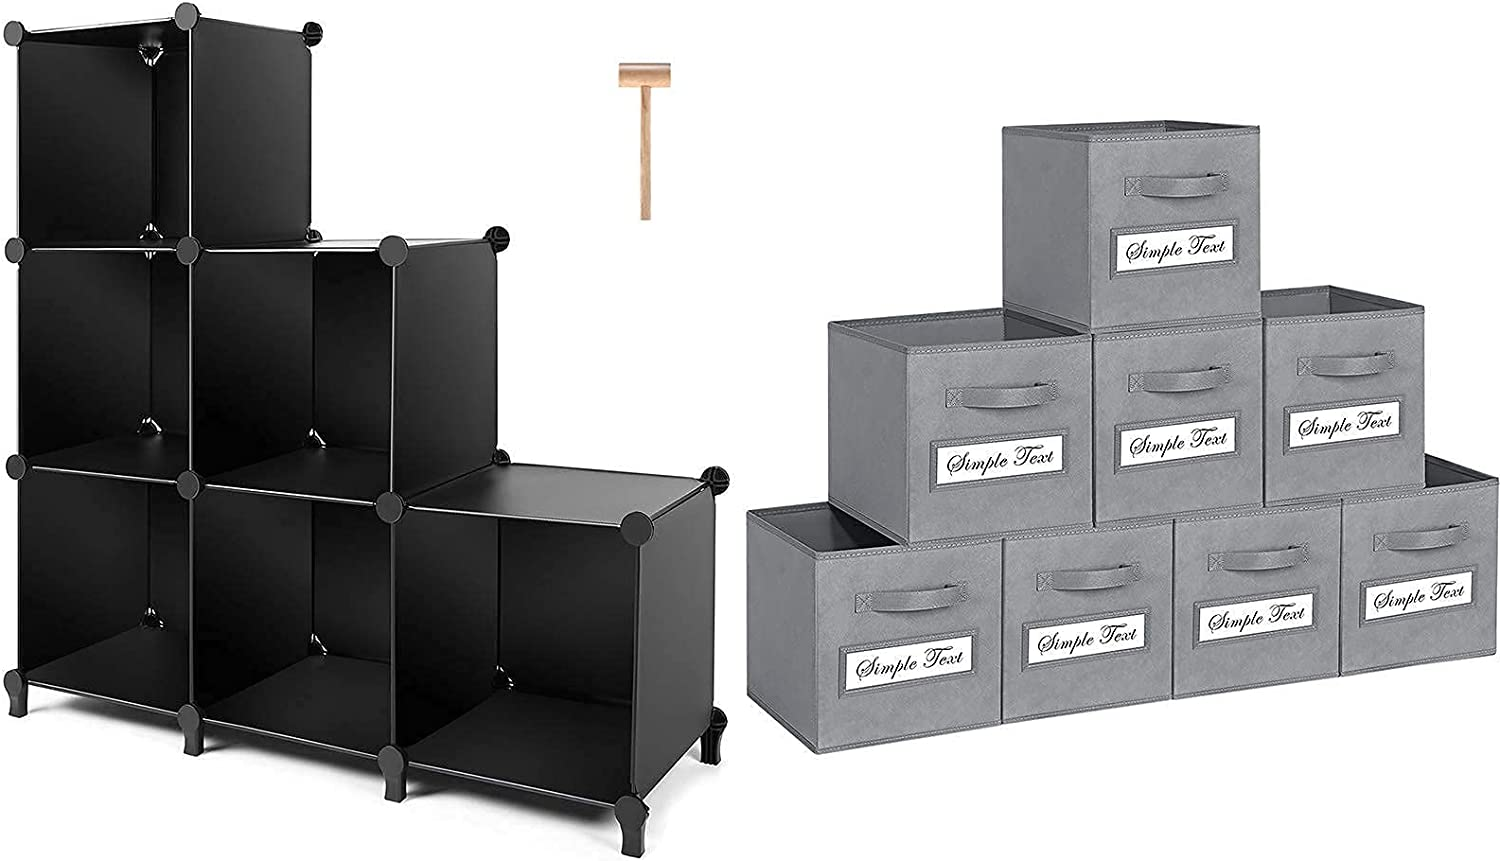 TomCare Cube Storage Surprise price 6-Cube Organizer Spring new work one after another Shelves wit Closet